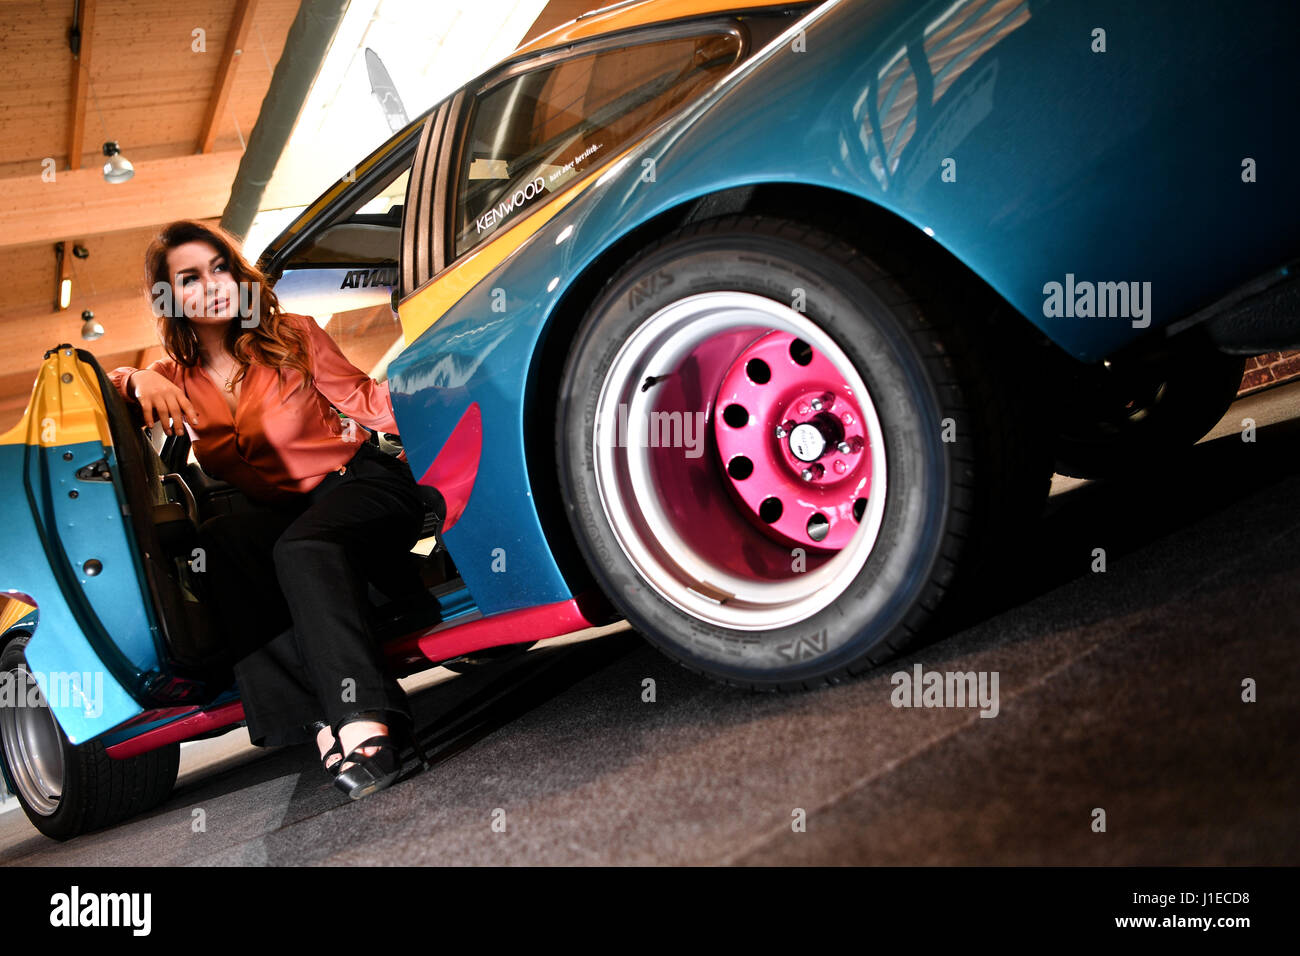 Friedrichshafen, Germany. 21st Apr, 2017. Miss Tuning Julia Oemler in a 180 hp, 6 cylinder Opel Manta B (1983) ahead - Stock Image